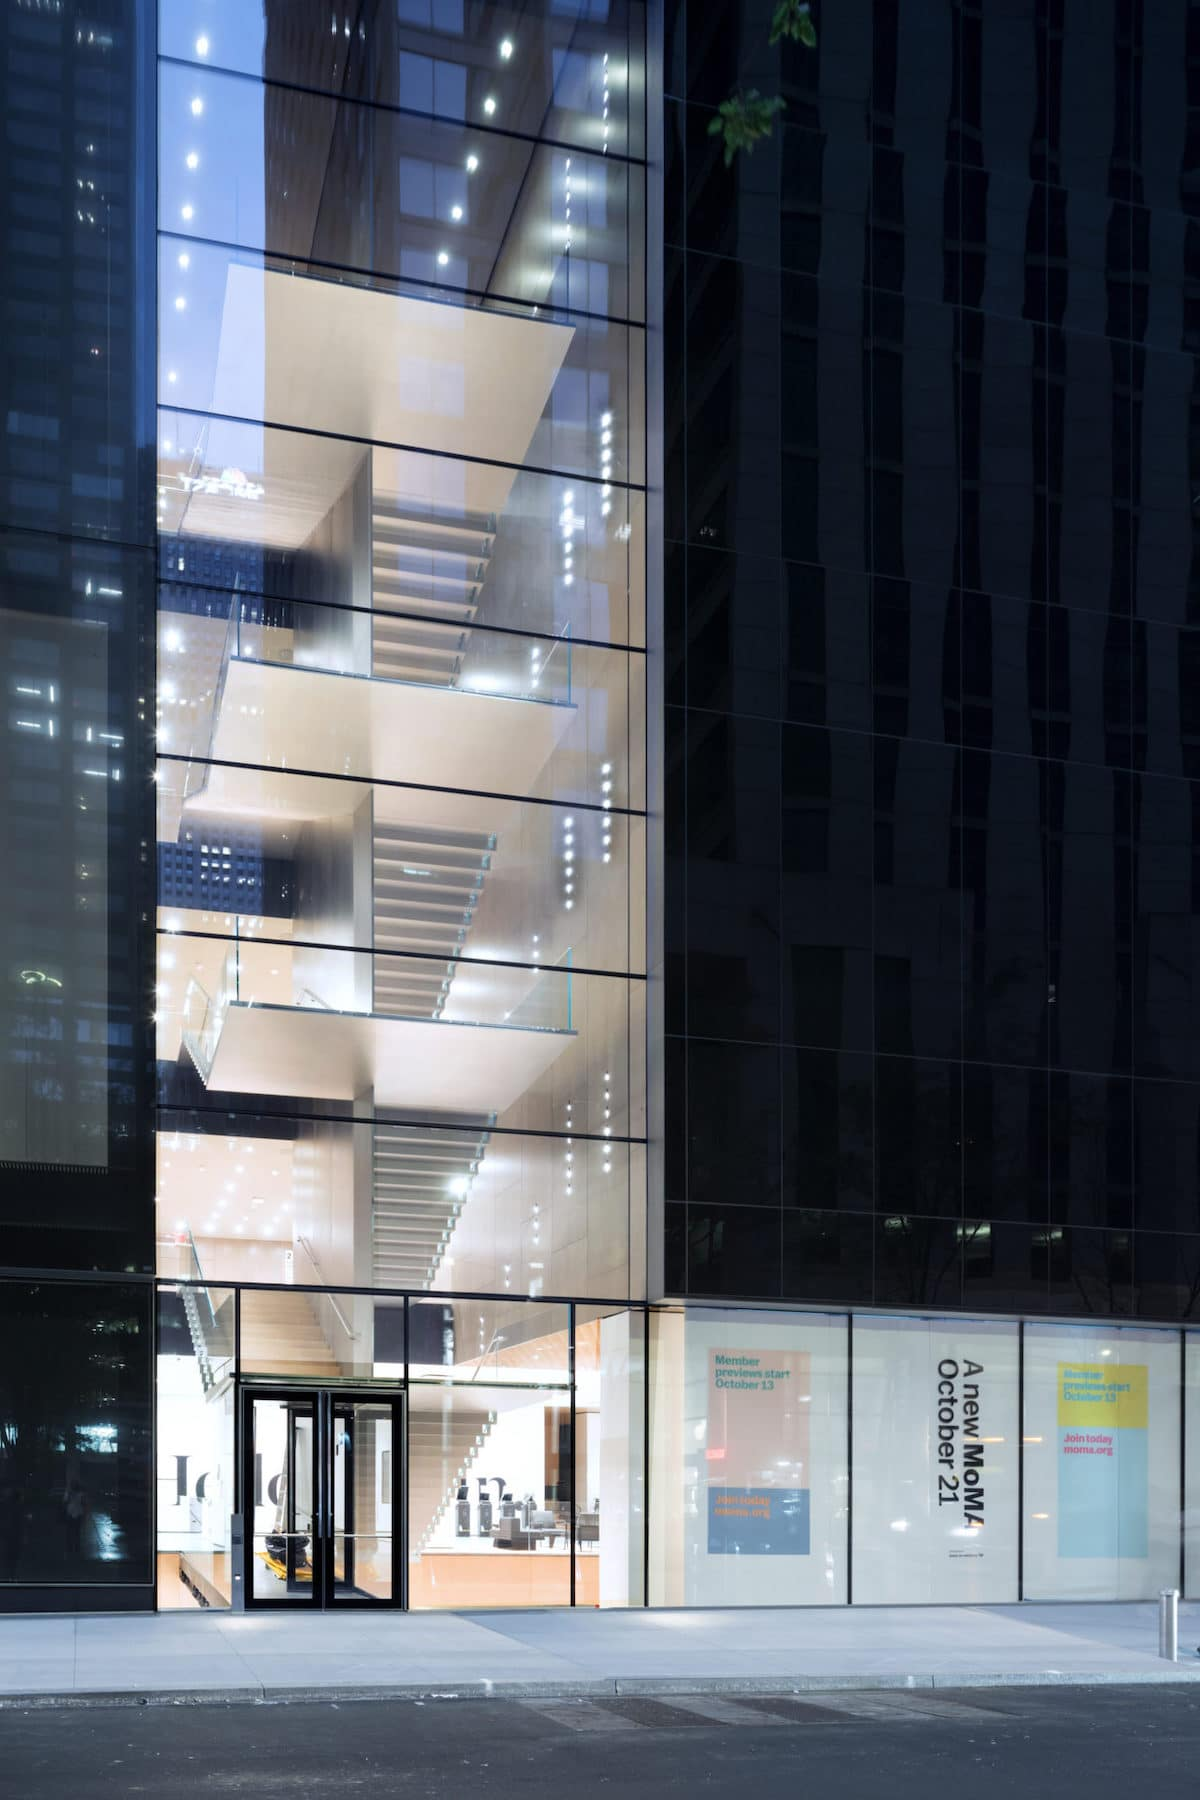 Exterior view of The Museum of Modern Art, Blade Stair Atrium, 53rd Street.